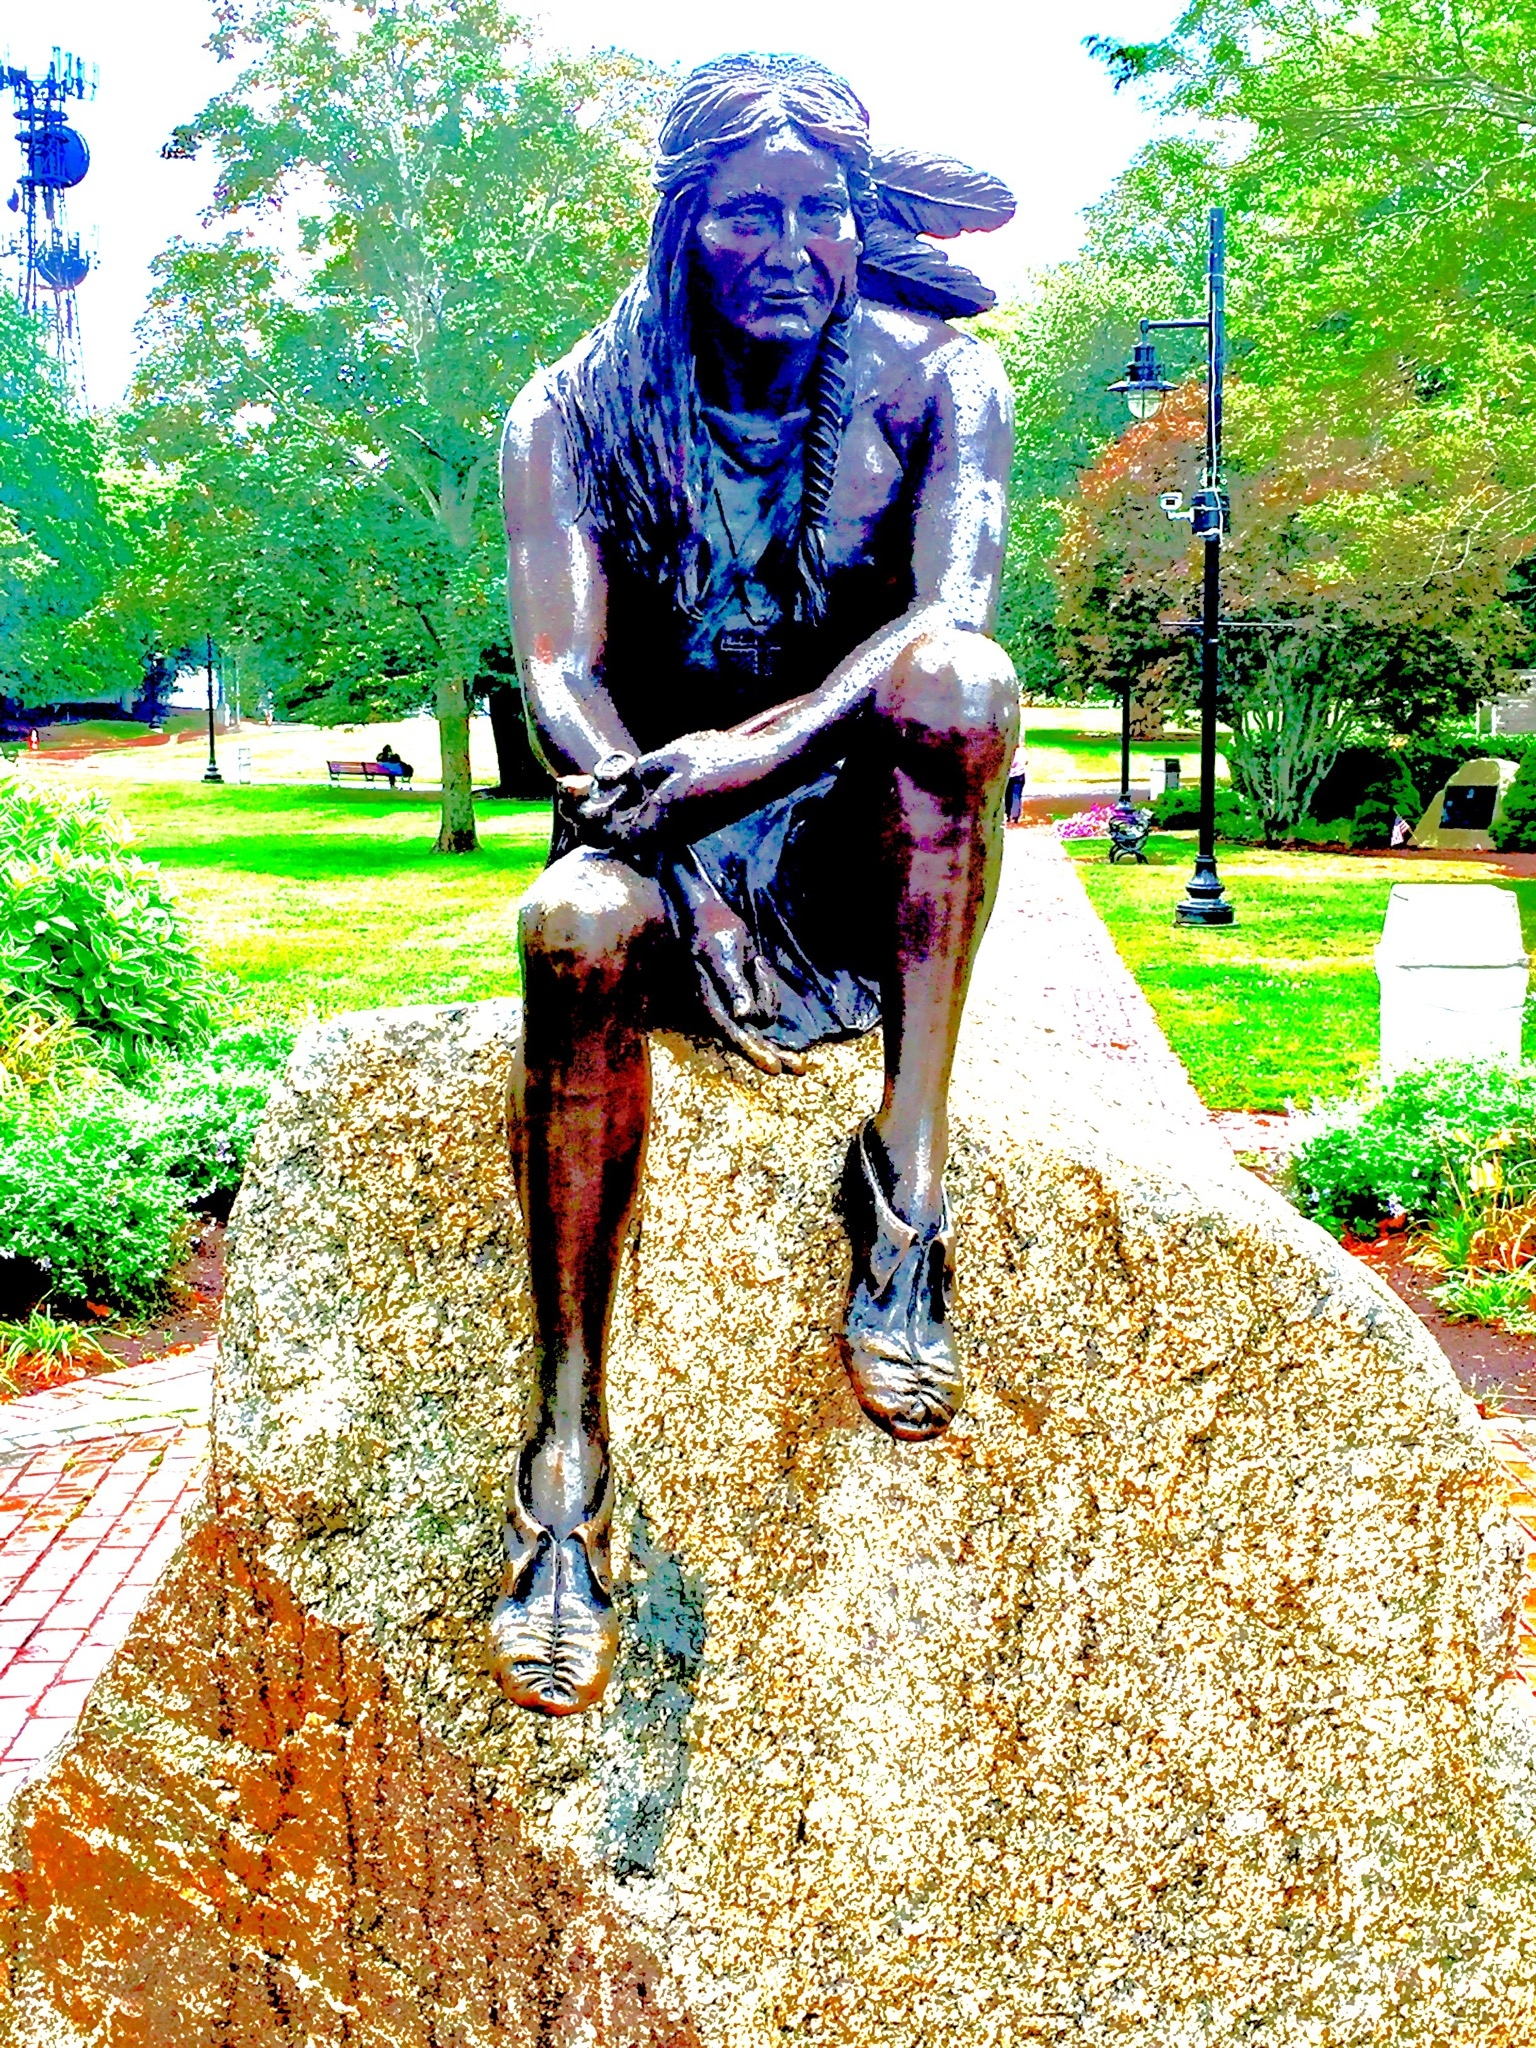 A statue of the sachem Iyanough, for whom Hyannis, Mass. is named. Iyanough helped arrange the return of 16-year-old John Billington, who got lost in 1621 and was taken custody by indigenous people. Iyanough died in 1621 while still in his 20s. Photo credit: M. Ciavardini